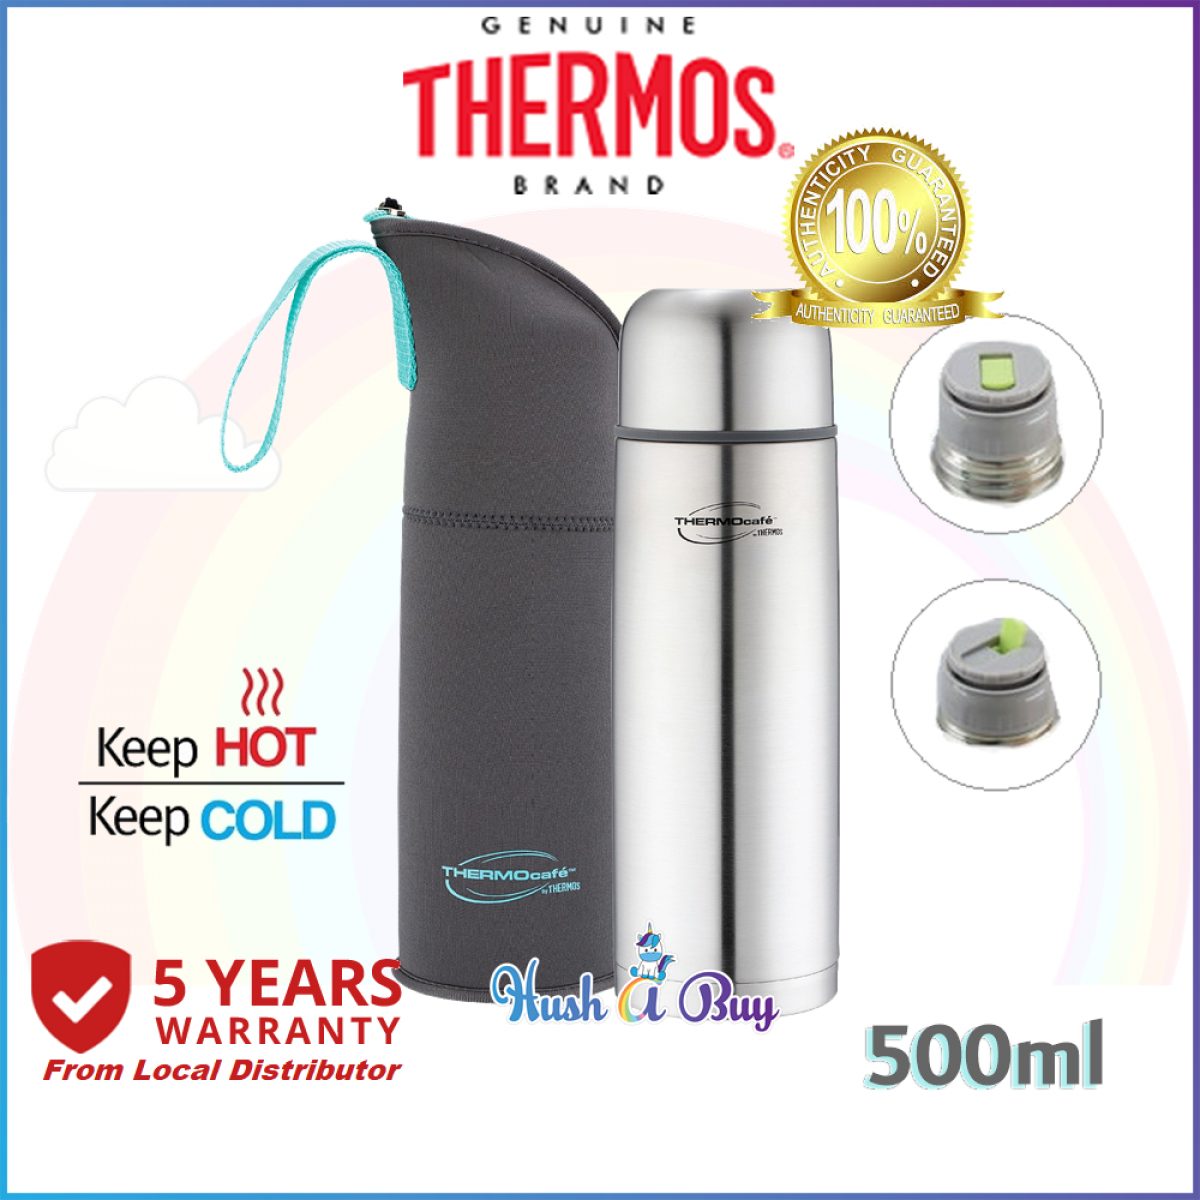 Thermos Thermocafe Stainless Steel Vacuum Insulated Tumbler with Pouch